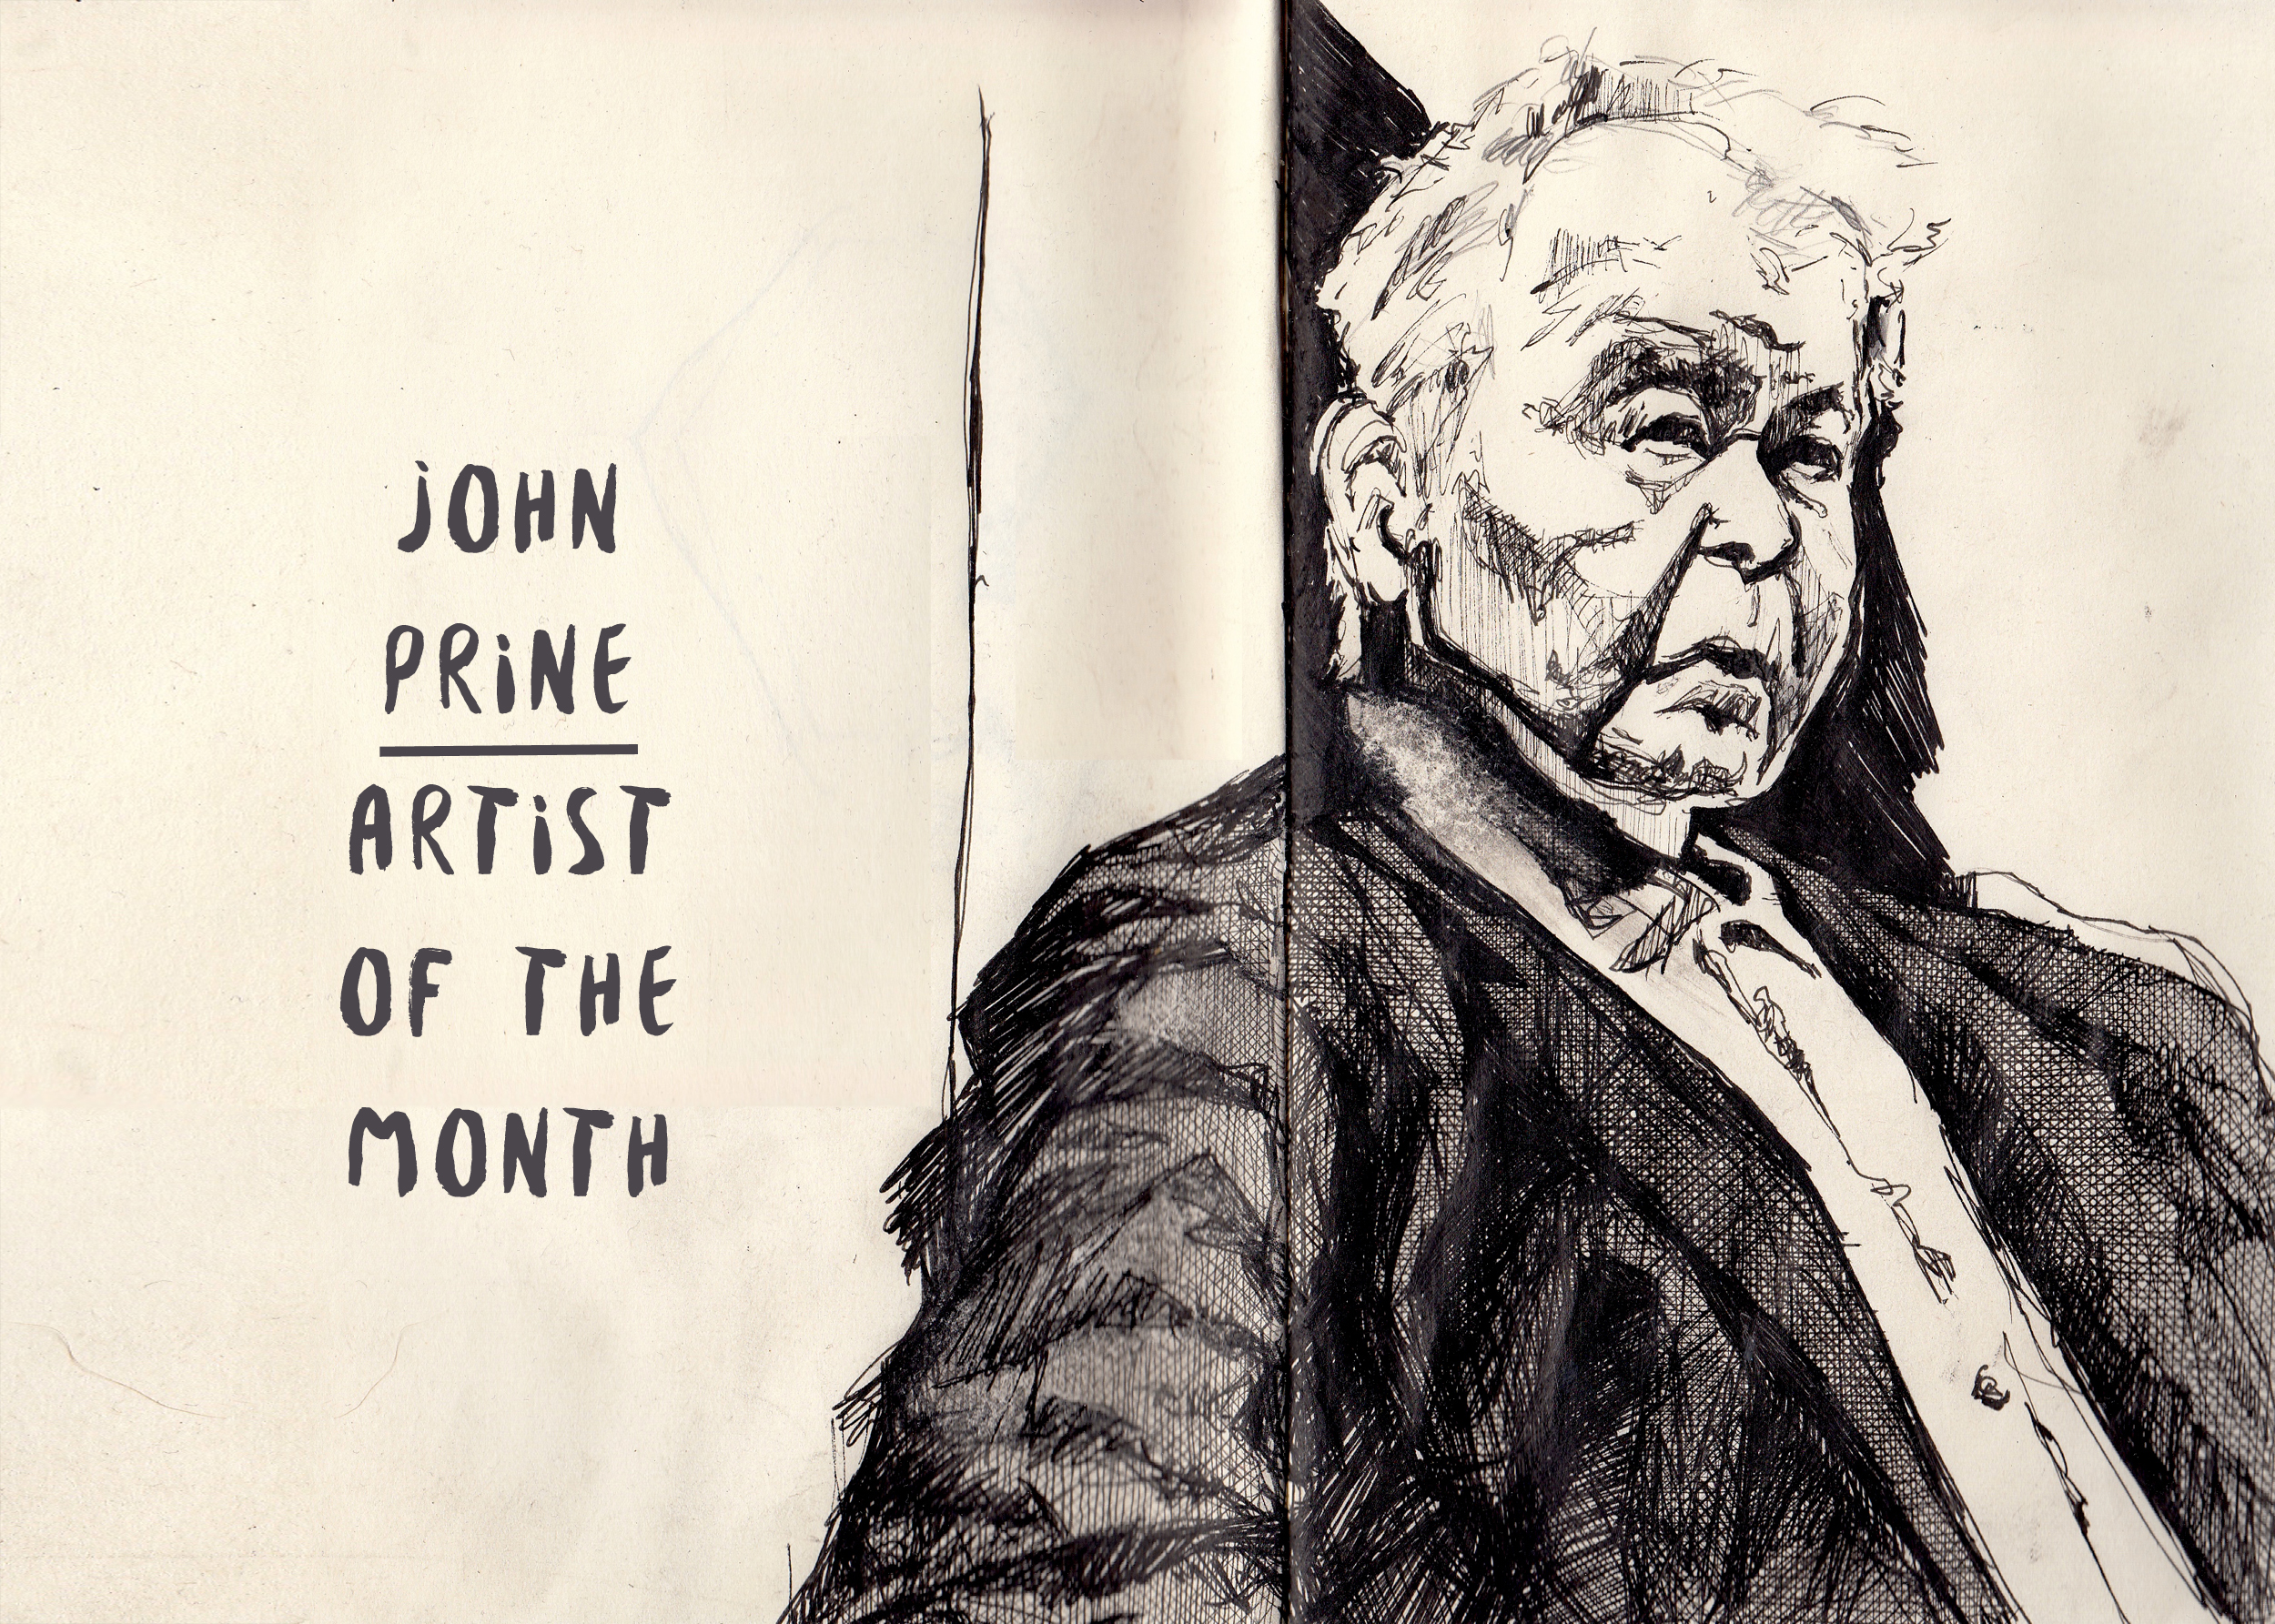 John Prine: The Difficulty of Forgiveness